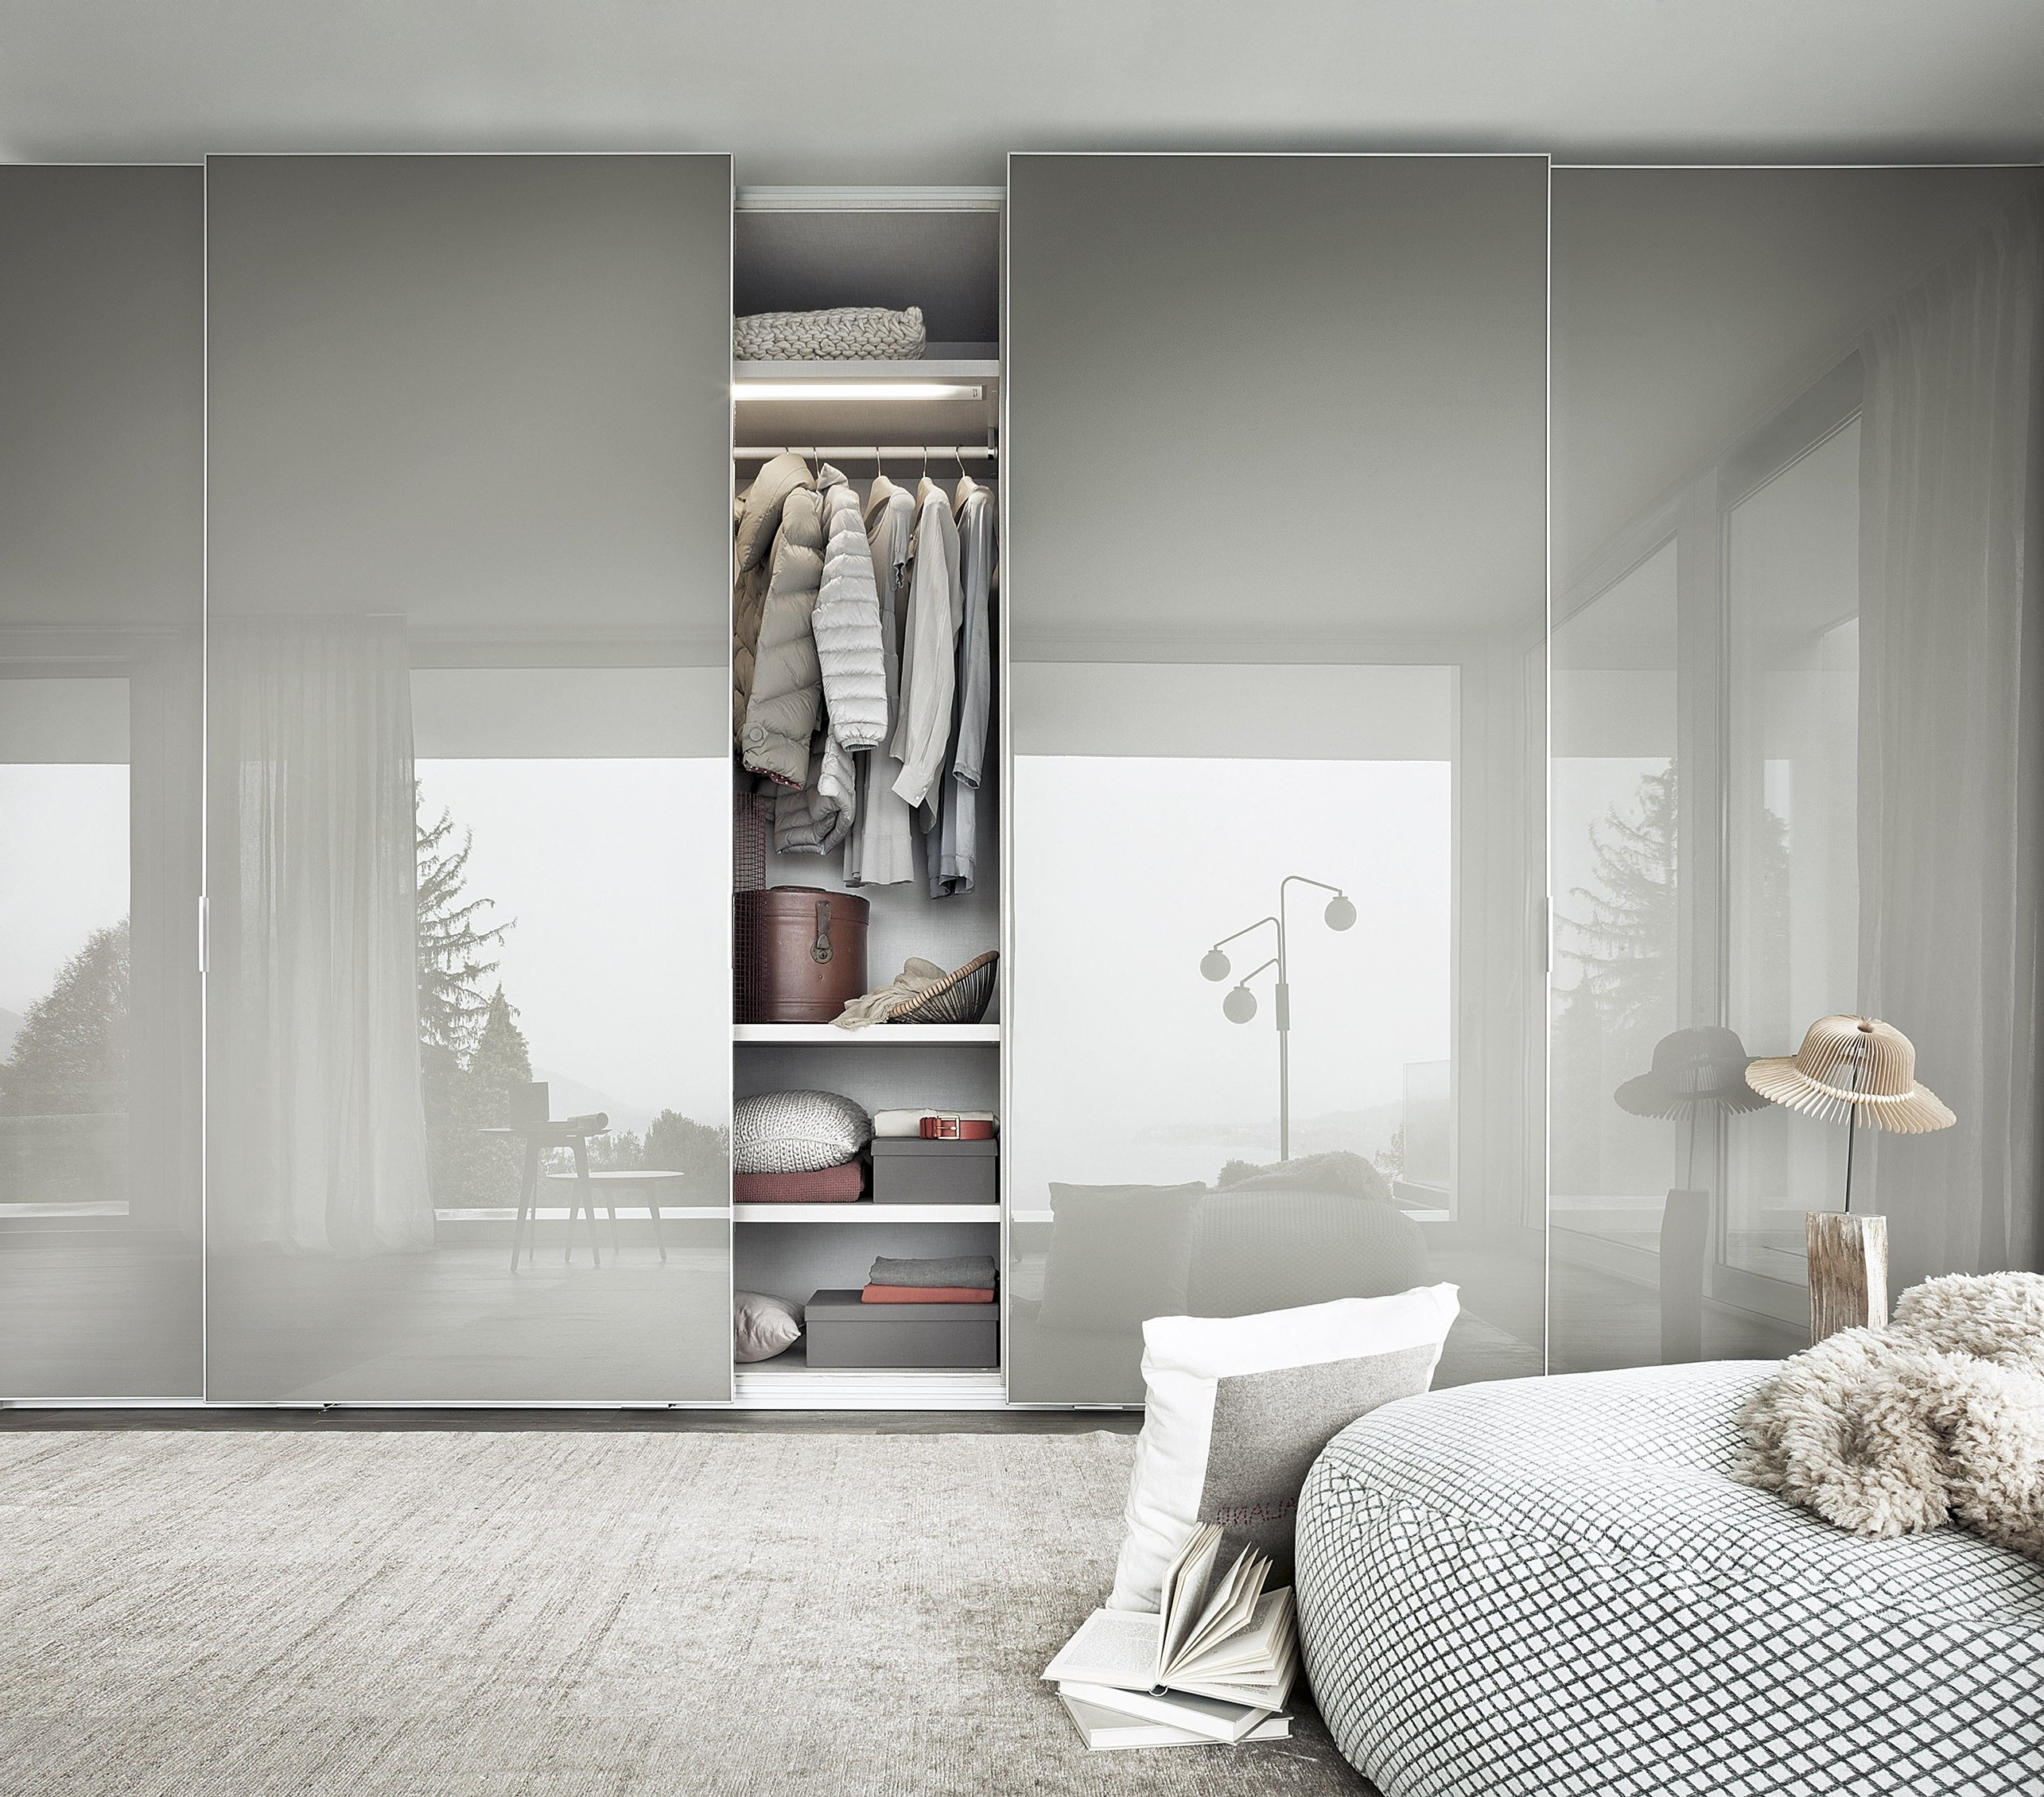 Most Recent Awesome White Gloss Wardrobes With Sliding Doors – Badotcom Within Black High Gloss Wardrobes (View 12 of 15)